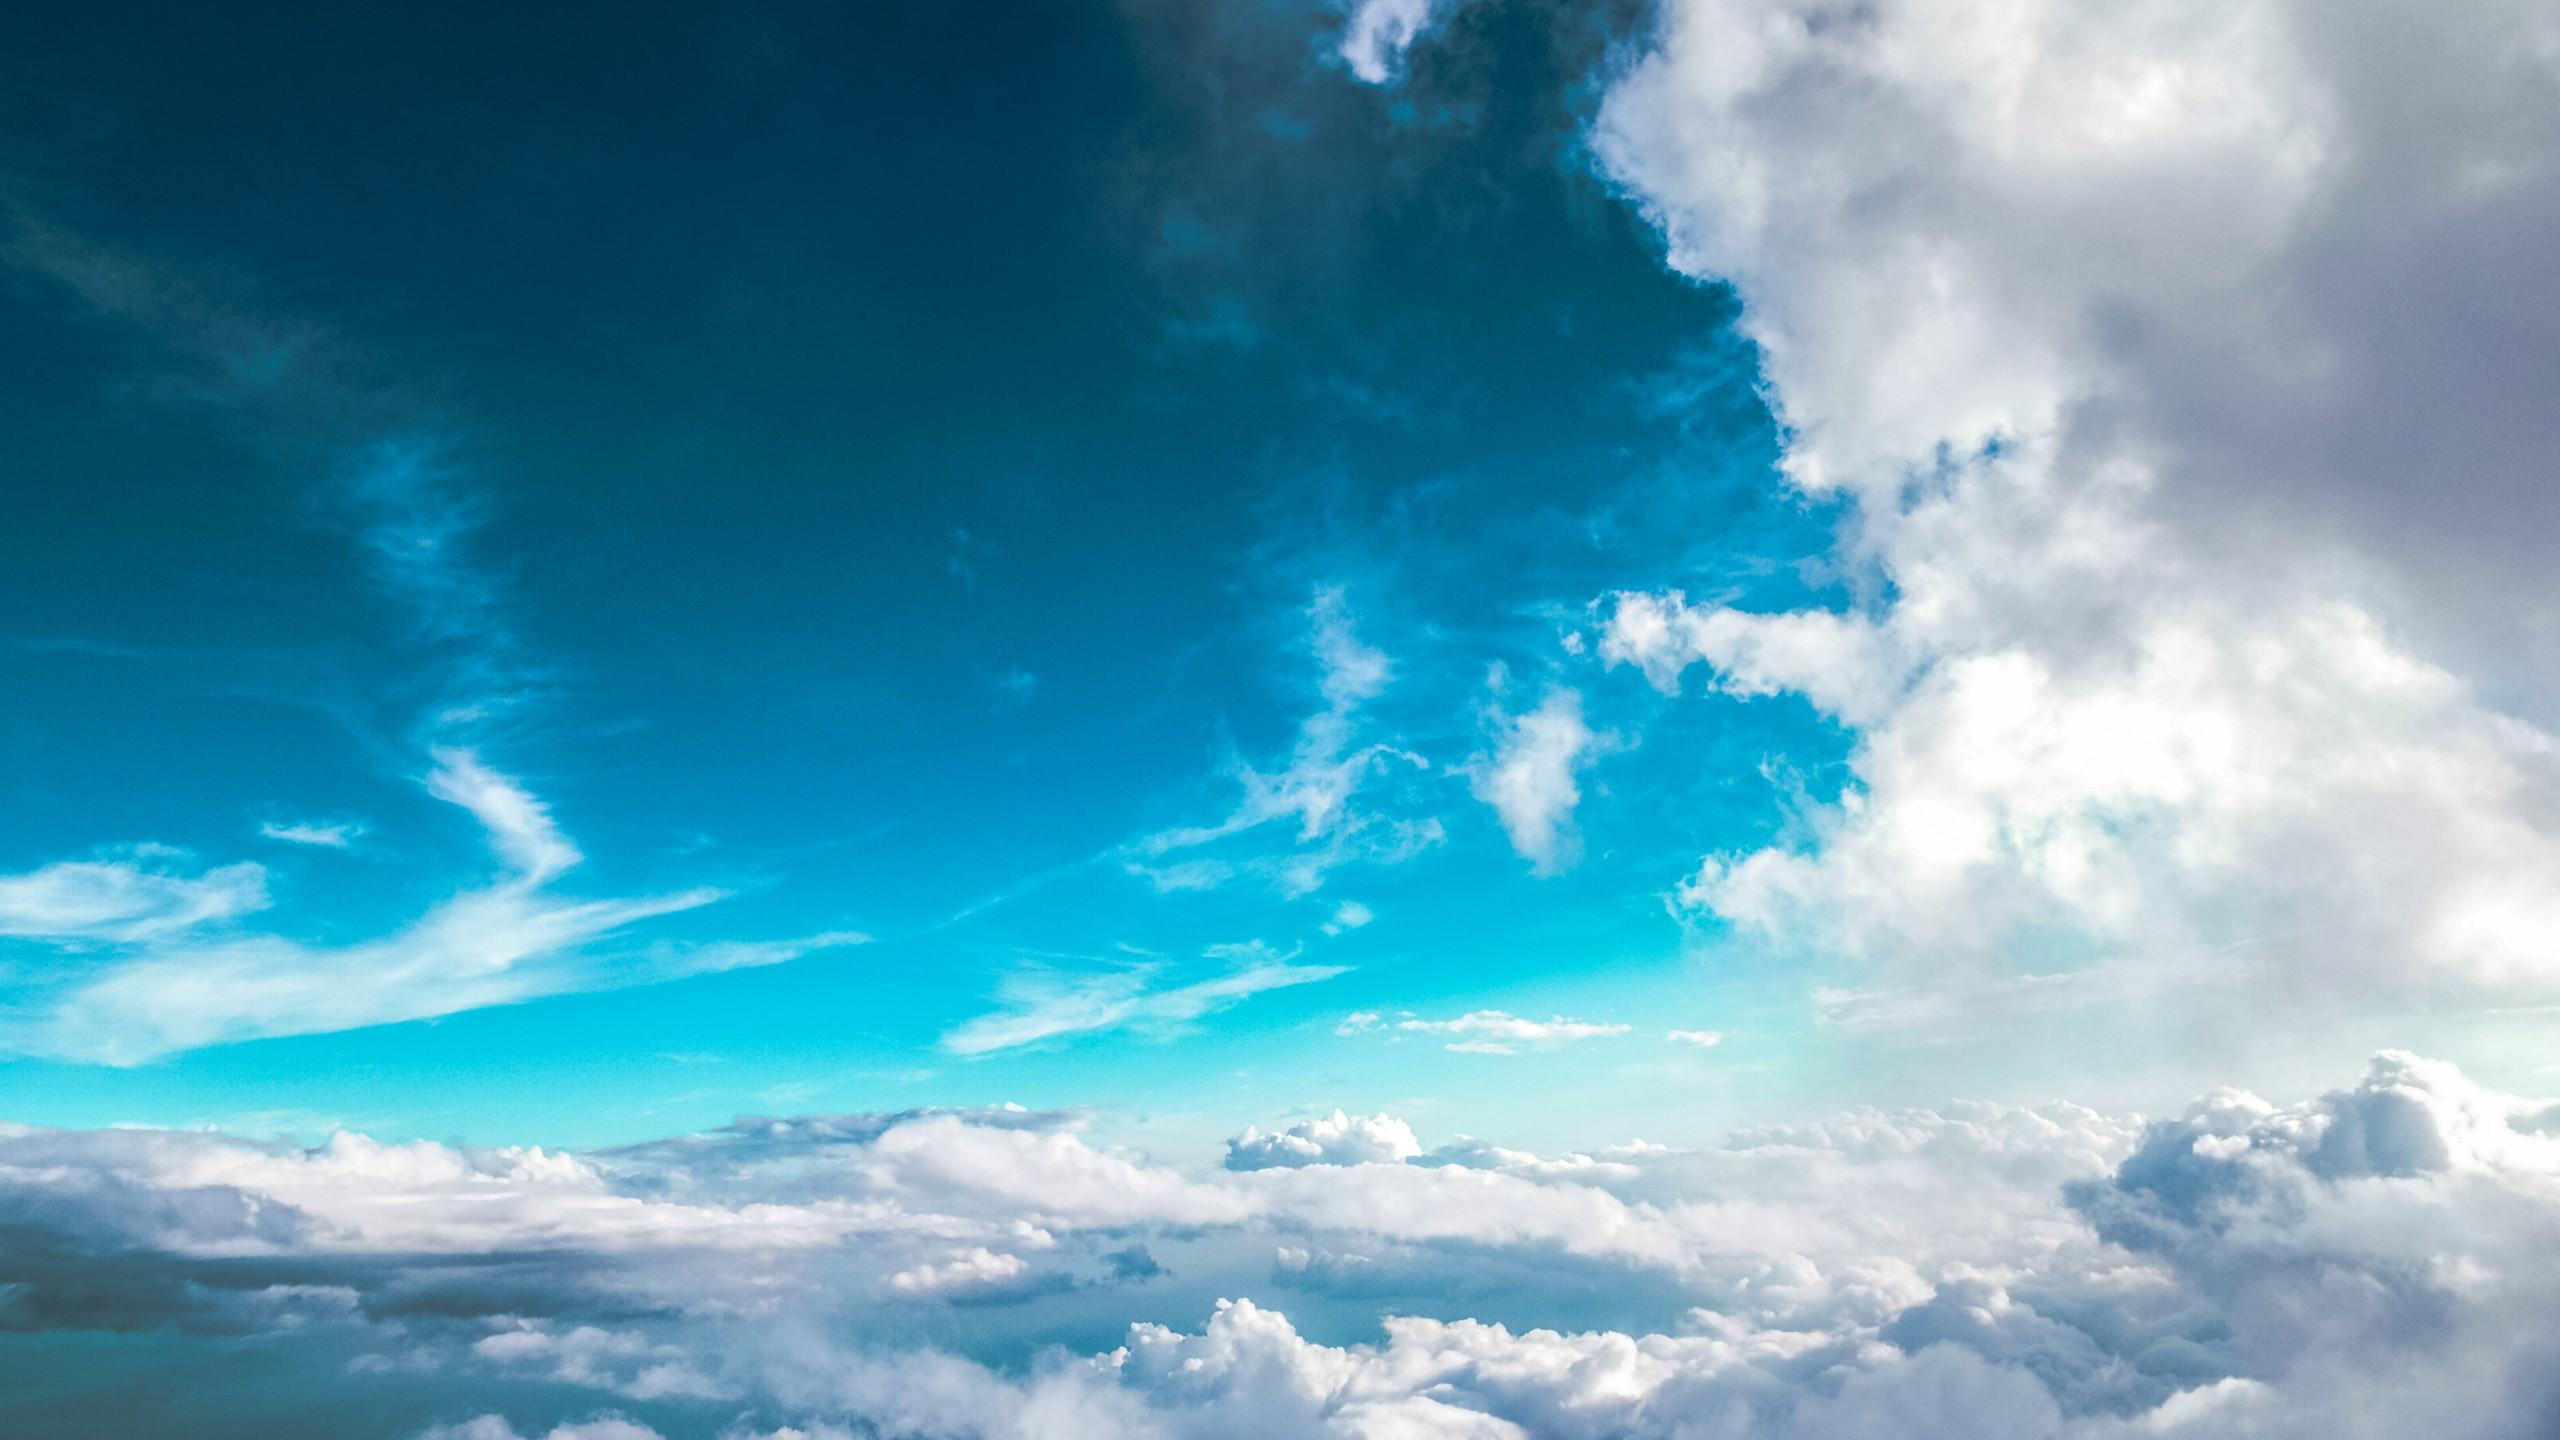 Clouds Blue Sky Wallpapers